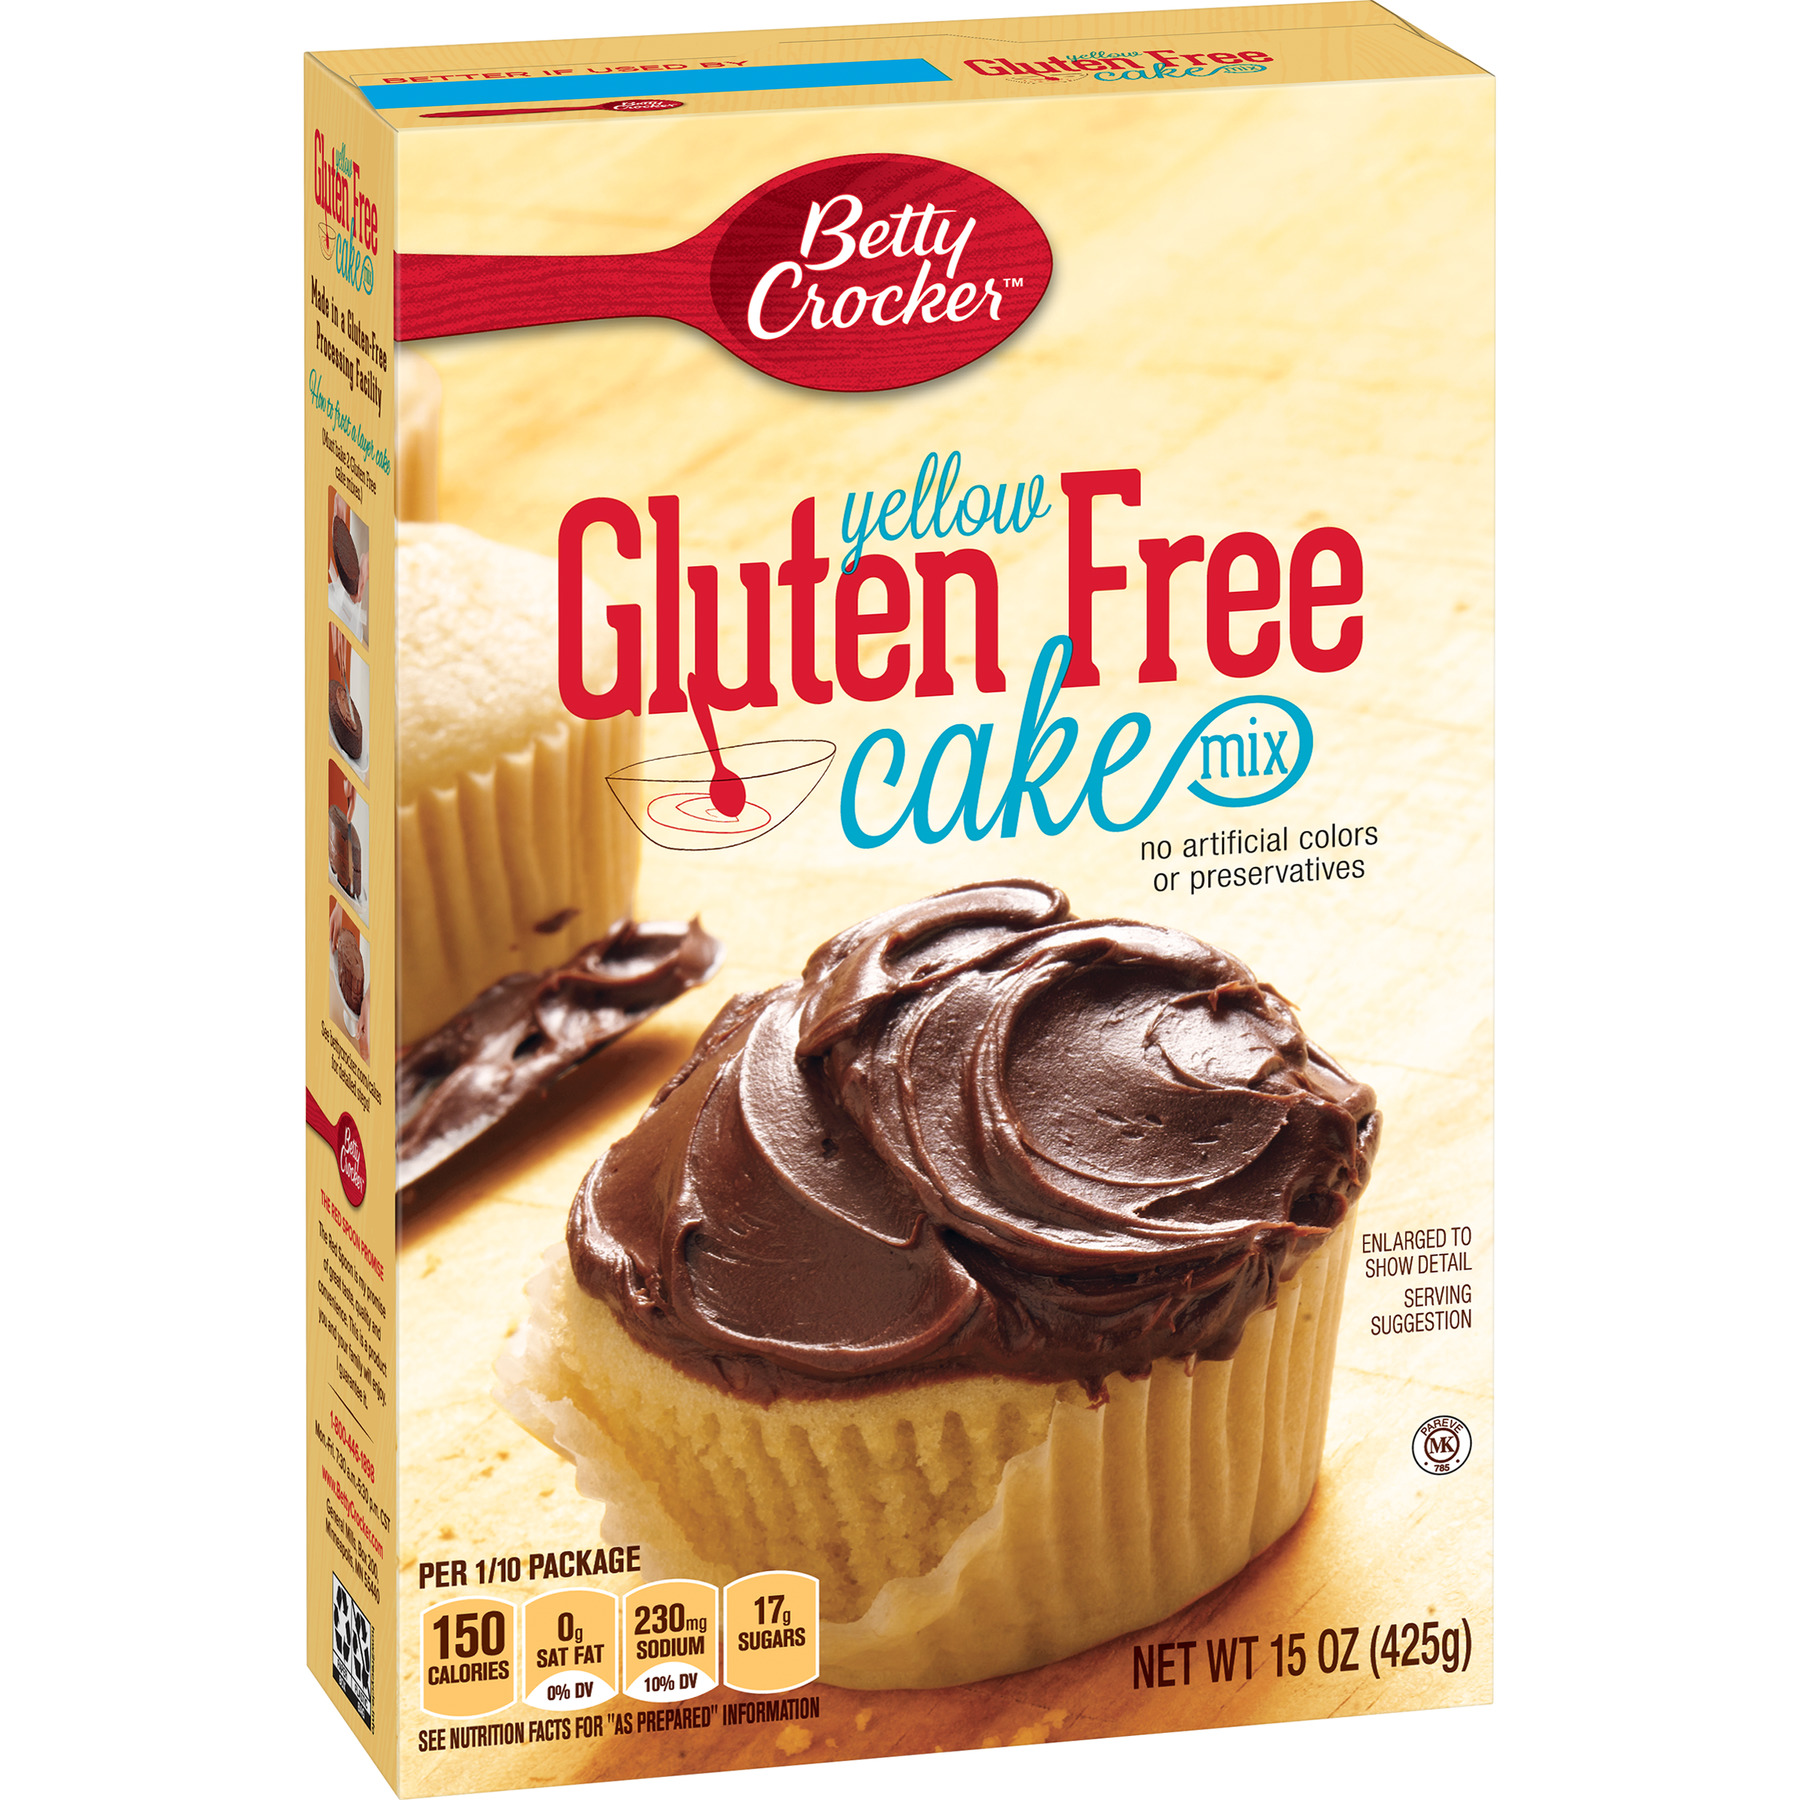 Betty Crocker Baking Mix, Gluten Free Cake Mix, Yellow, 15 Oz Box